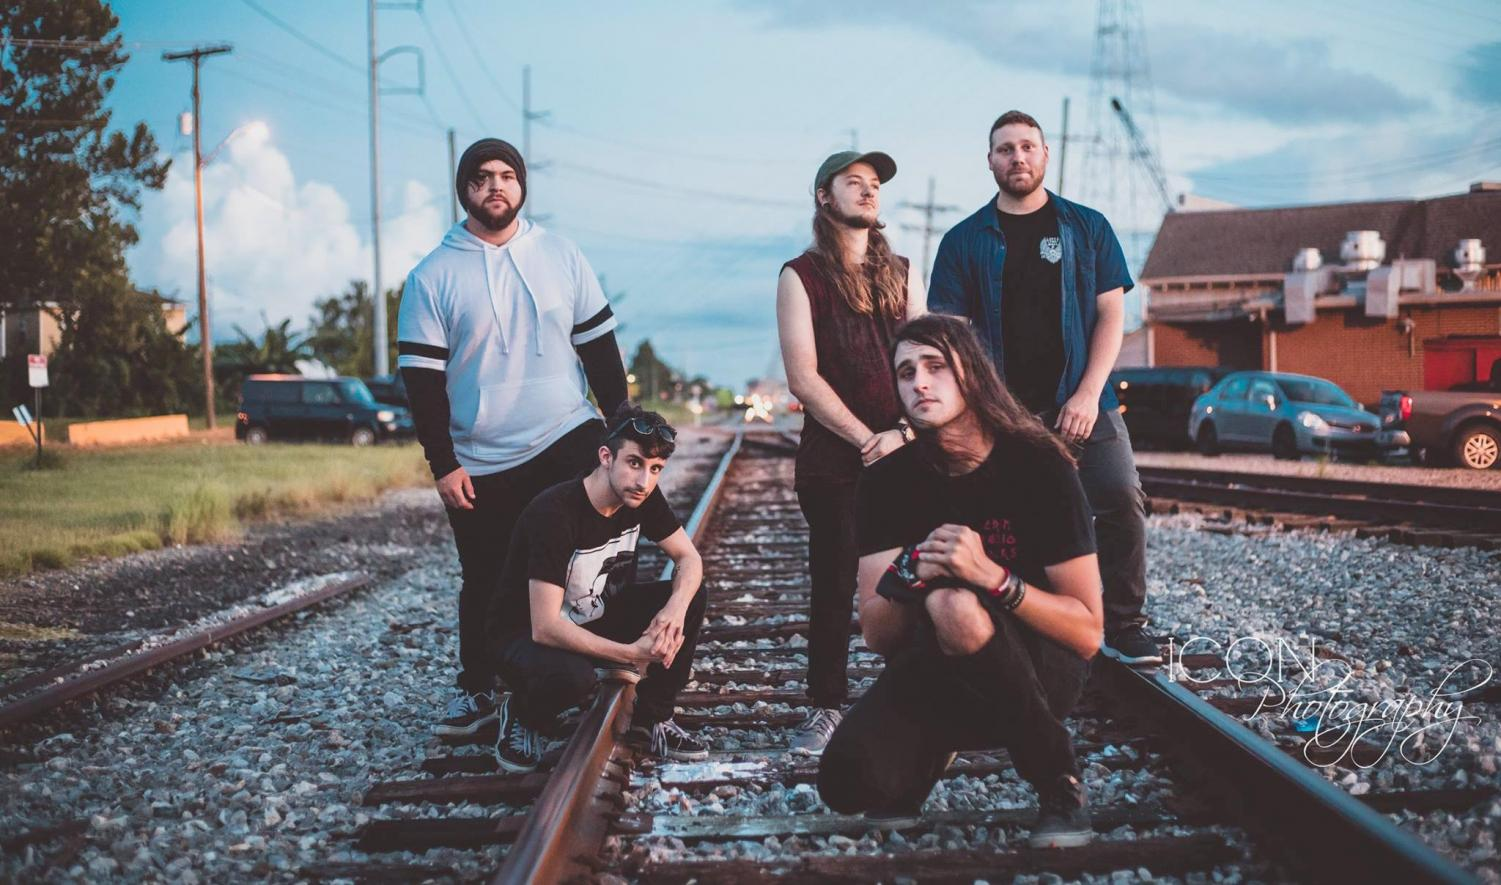 Baton Rouge-based band Ventruss released their self-titled extended play in February.